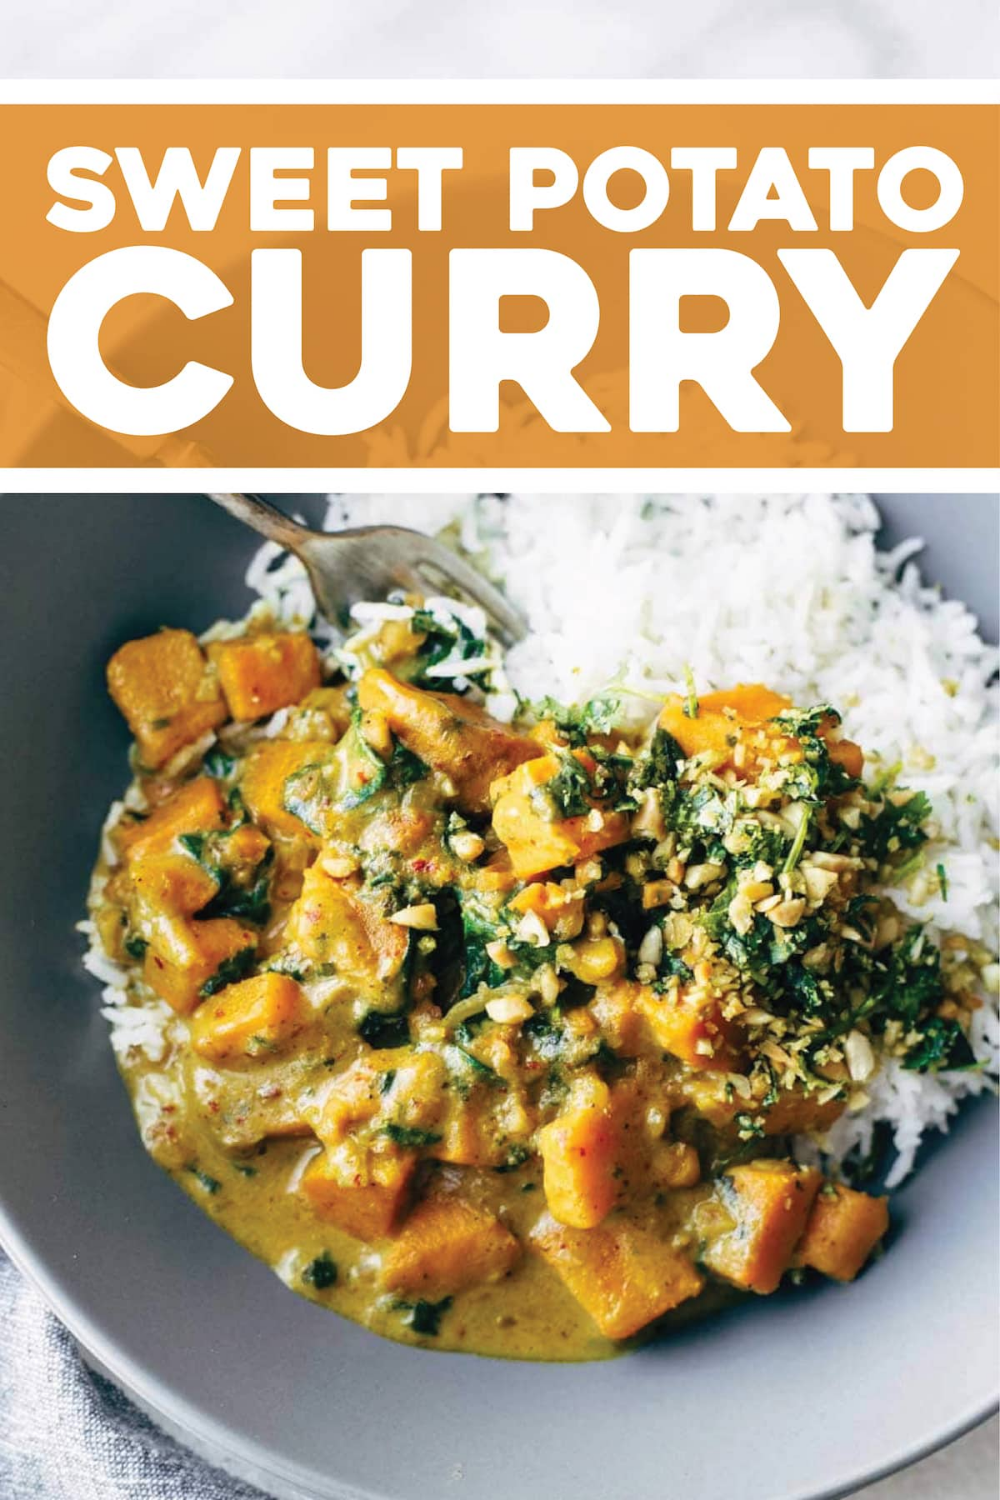 Creamy Thai Sweet Potato Curry - packed with nutrition! Our favorite easy, healthy, winter comfort food recipe. Vegetarian and vegan #curry #vegetarian #vegan